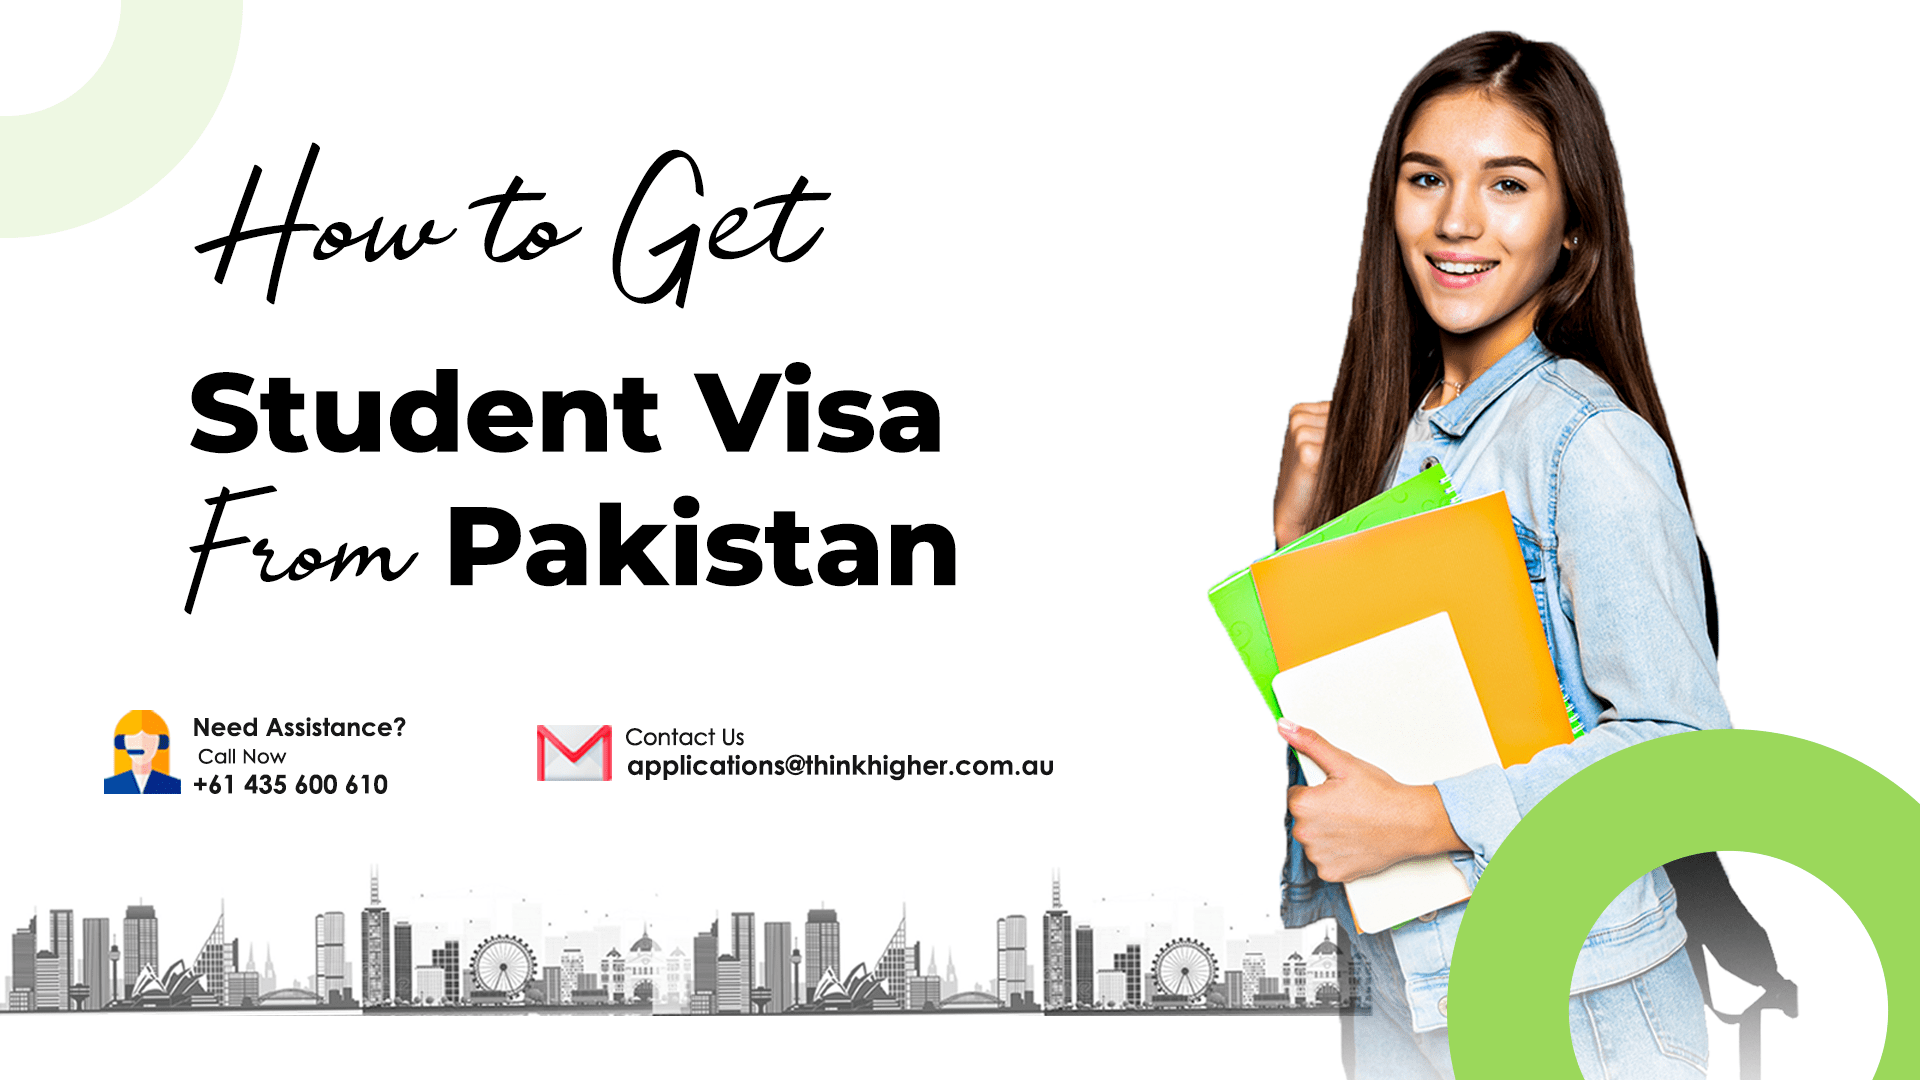 How to Get a Student Visa from Pakistan